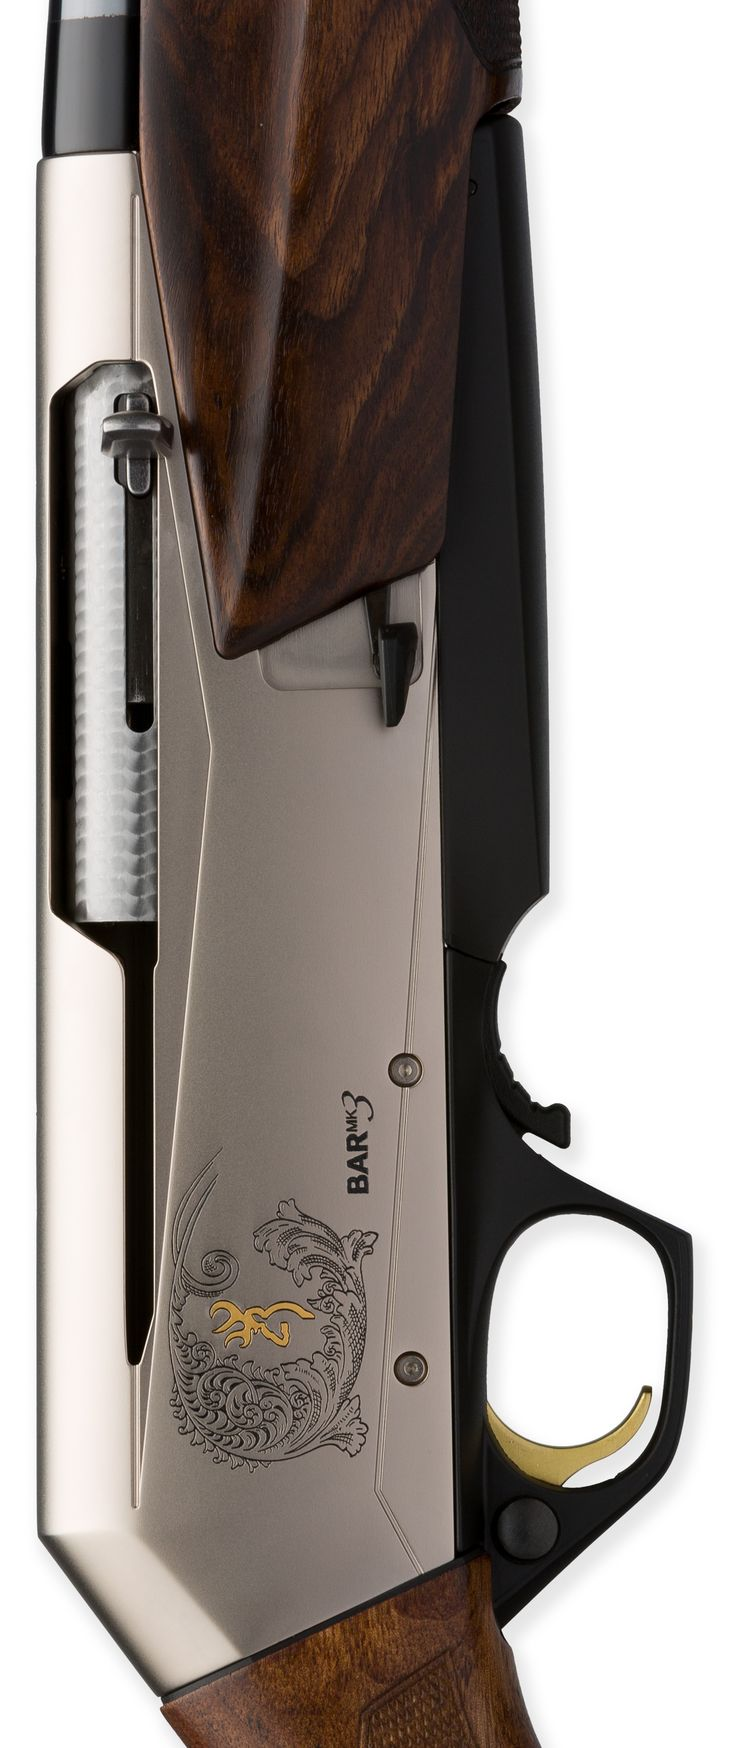 Browning BAR MK 3 Autoloader with traditional walnut stock, polished blued steel barrel, engraved alloy receiver, Inflex recoil pad MSRP $1,240